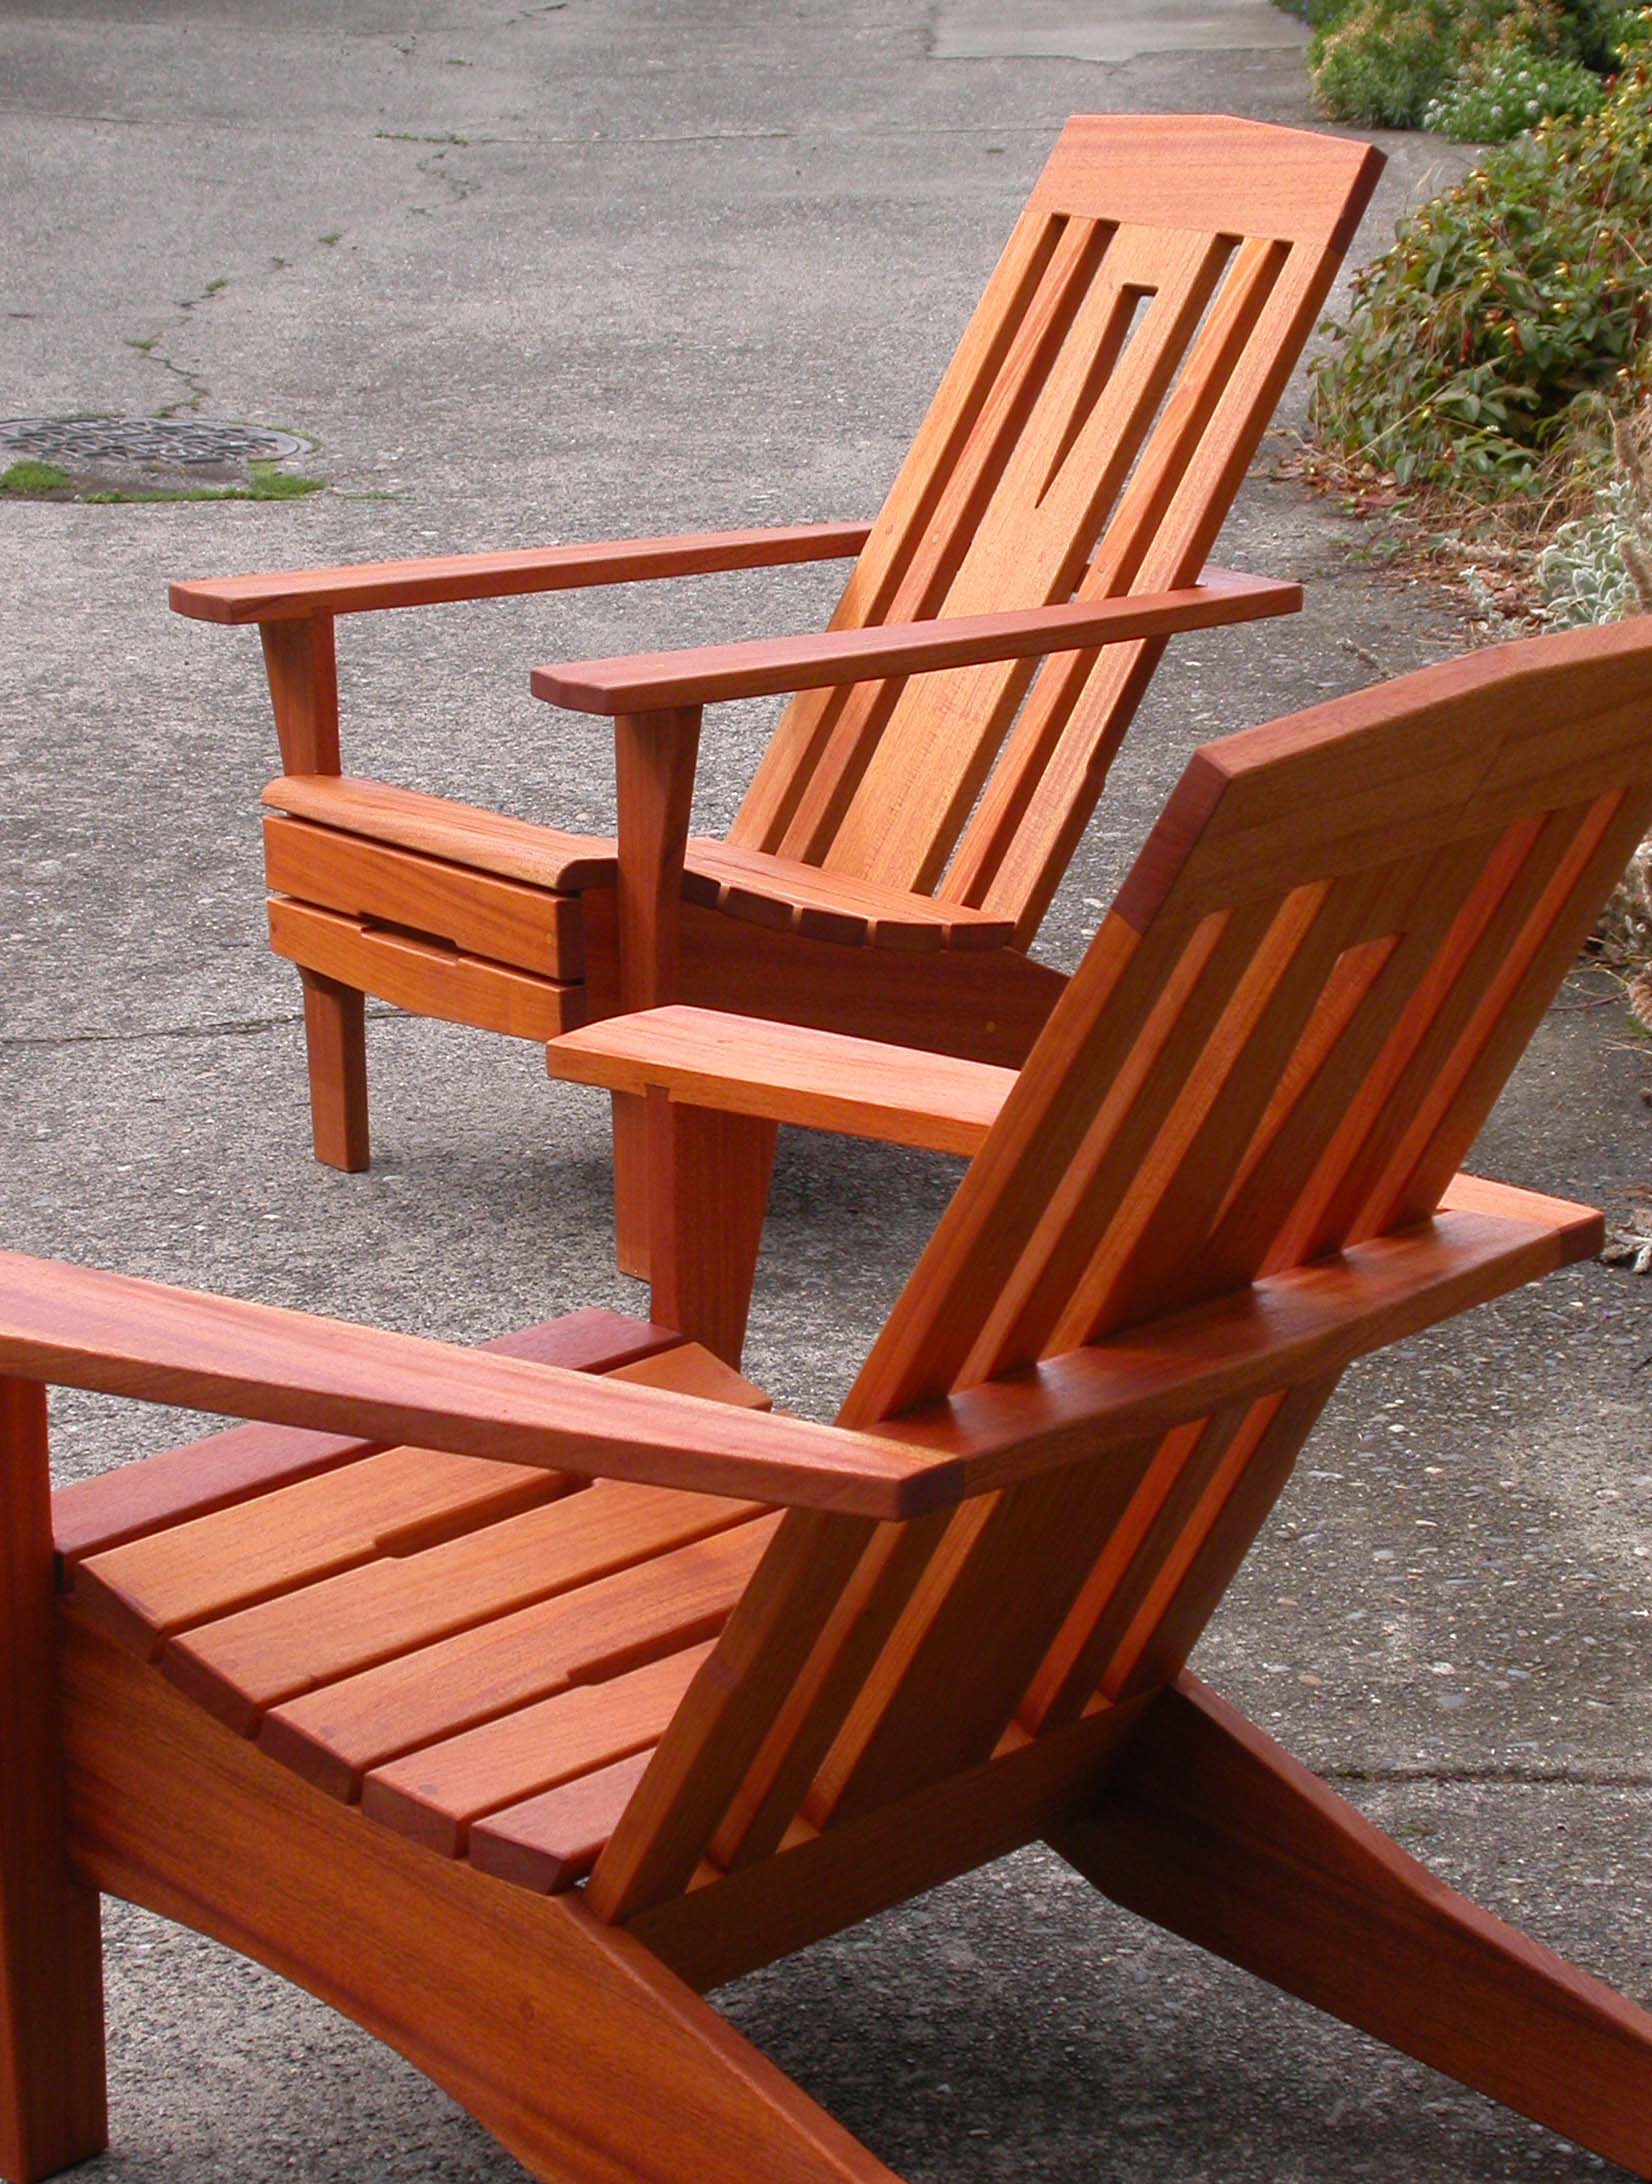 Celeski Studios Introduces The Elliott Bay Collection Of Arts U0026 Crafts  Inspired Custom Outdoor Furniture Part 2